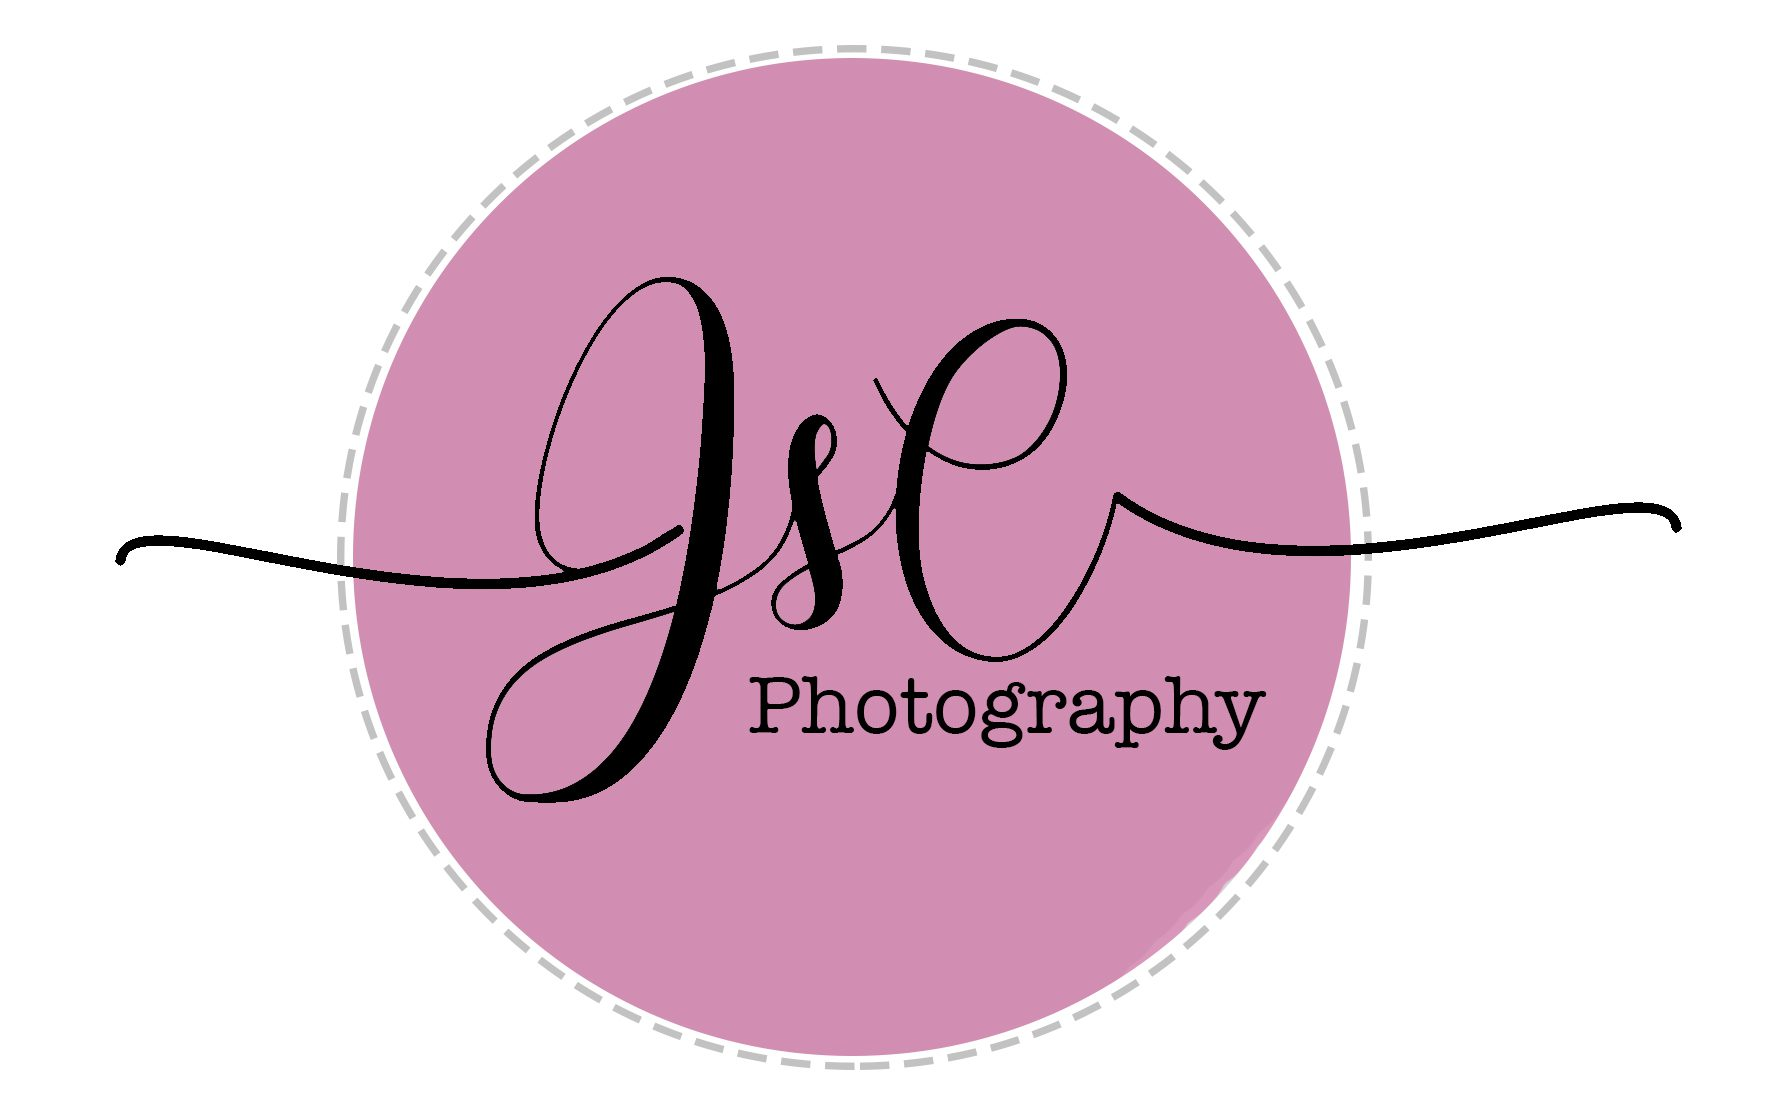 JsC Photography